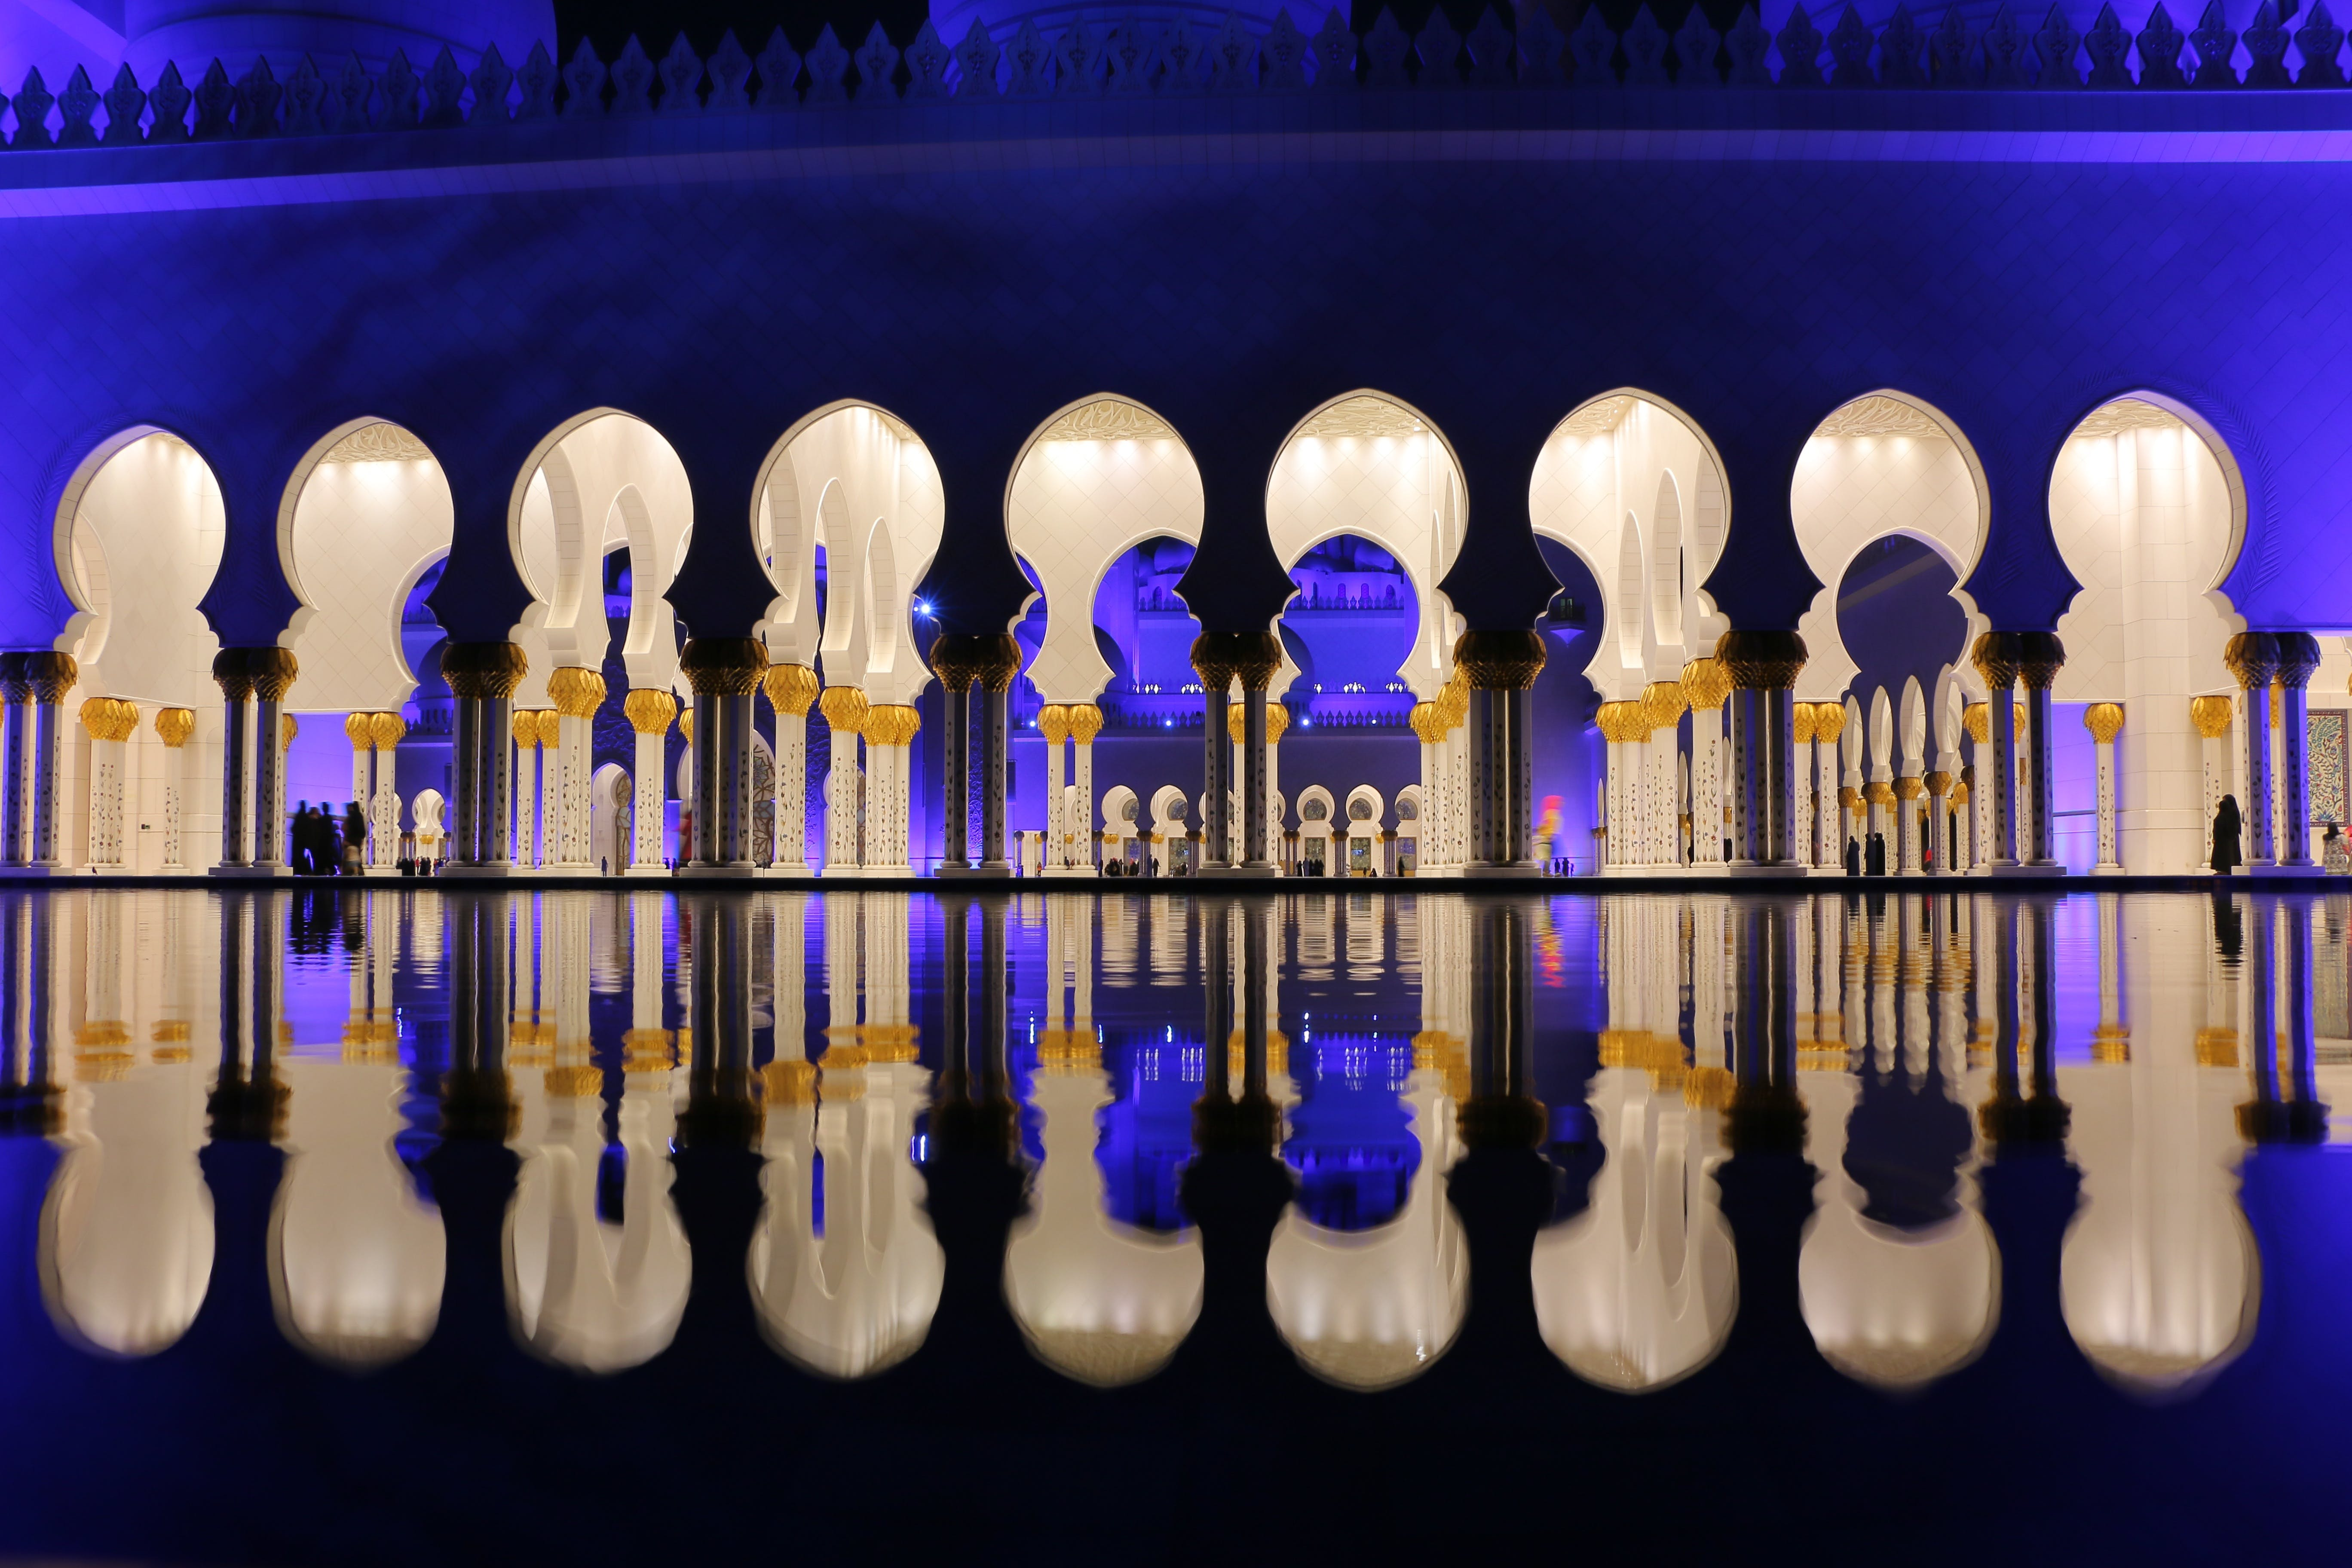 Free stock photo of lights, building, architecture, reflections